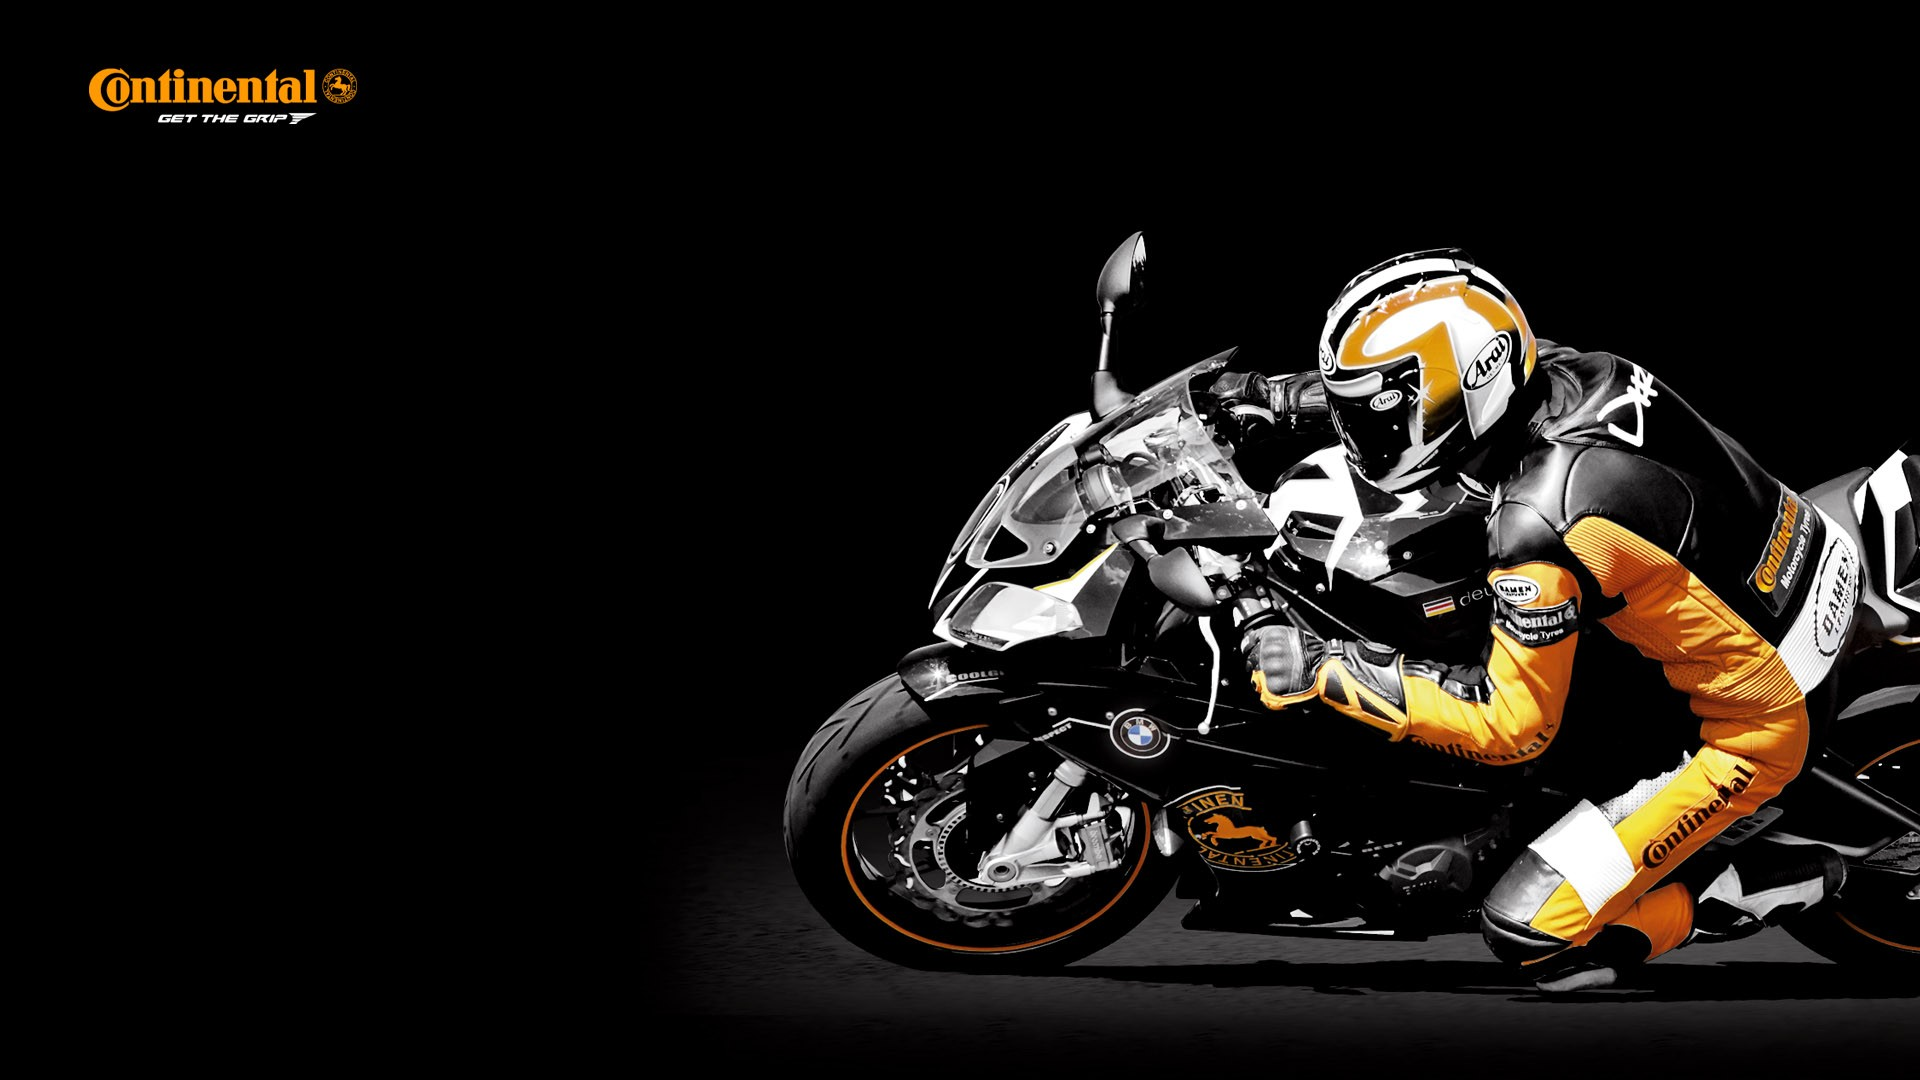 Motorcycle Wallpaper